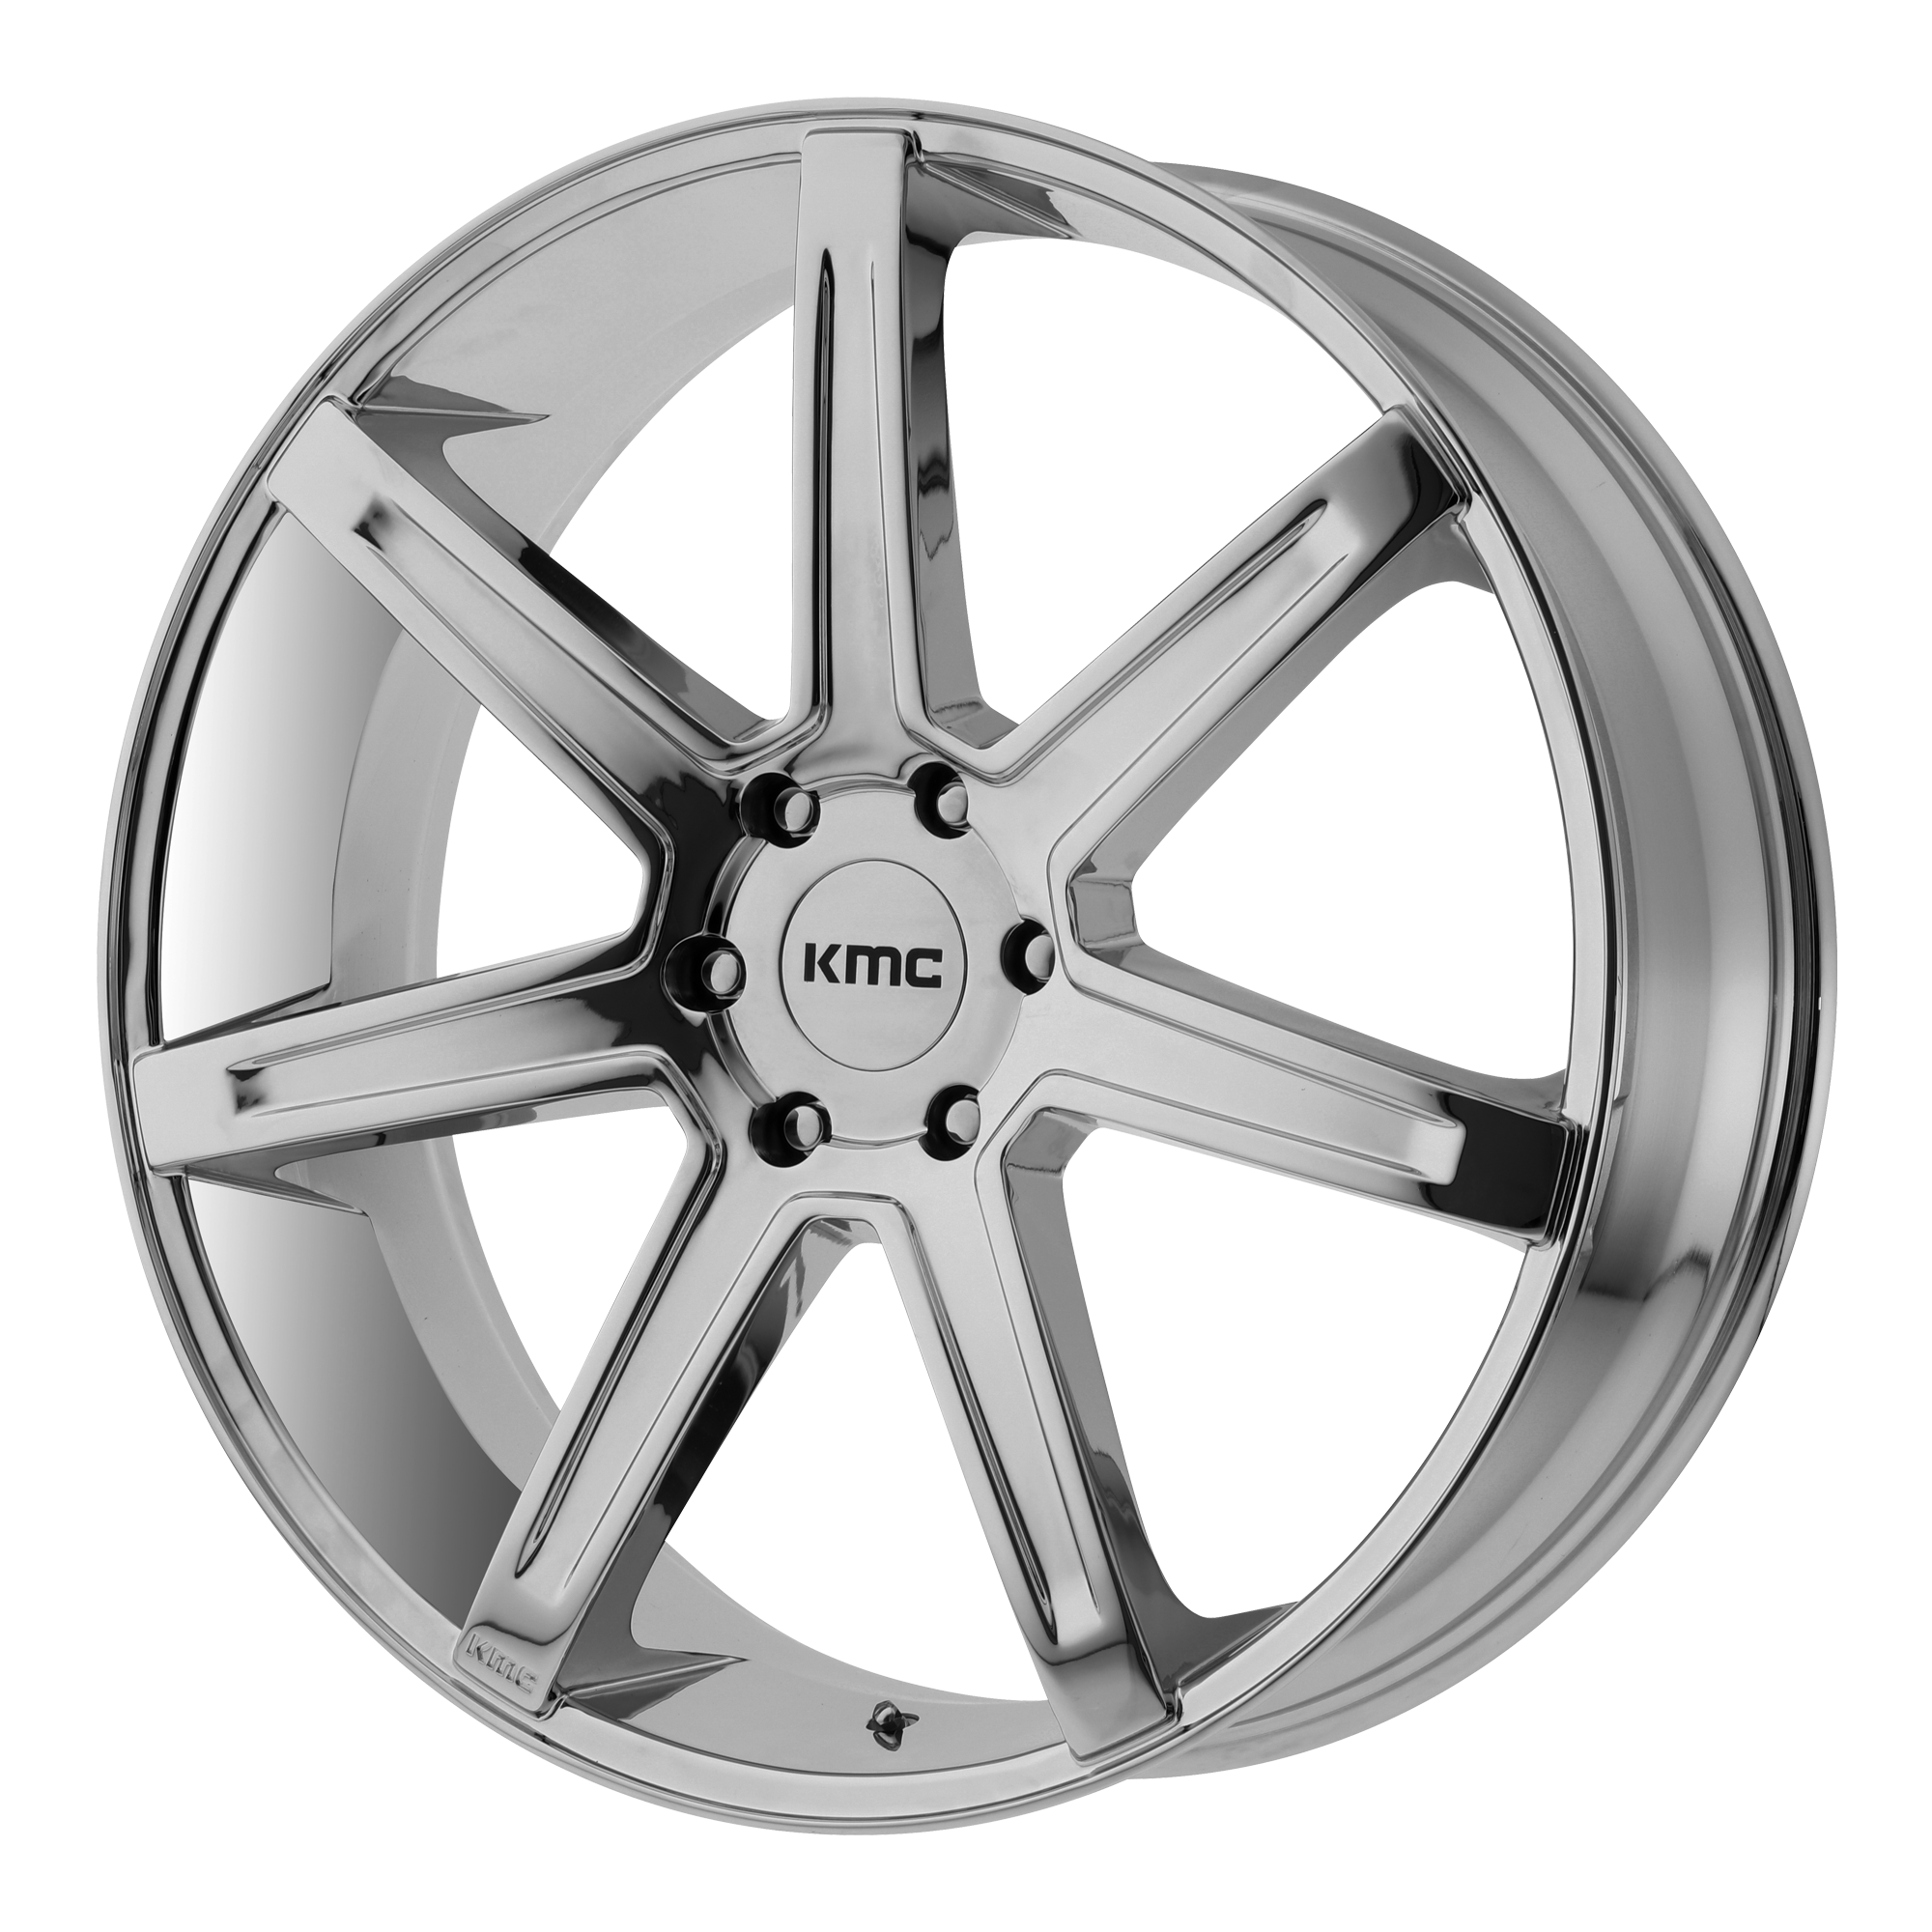 KMC REVERT 22x9.5 6x139.70 CHROME (15 mm) RIM